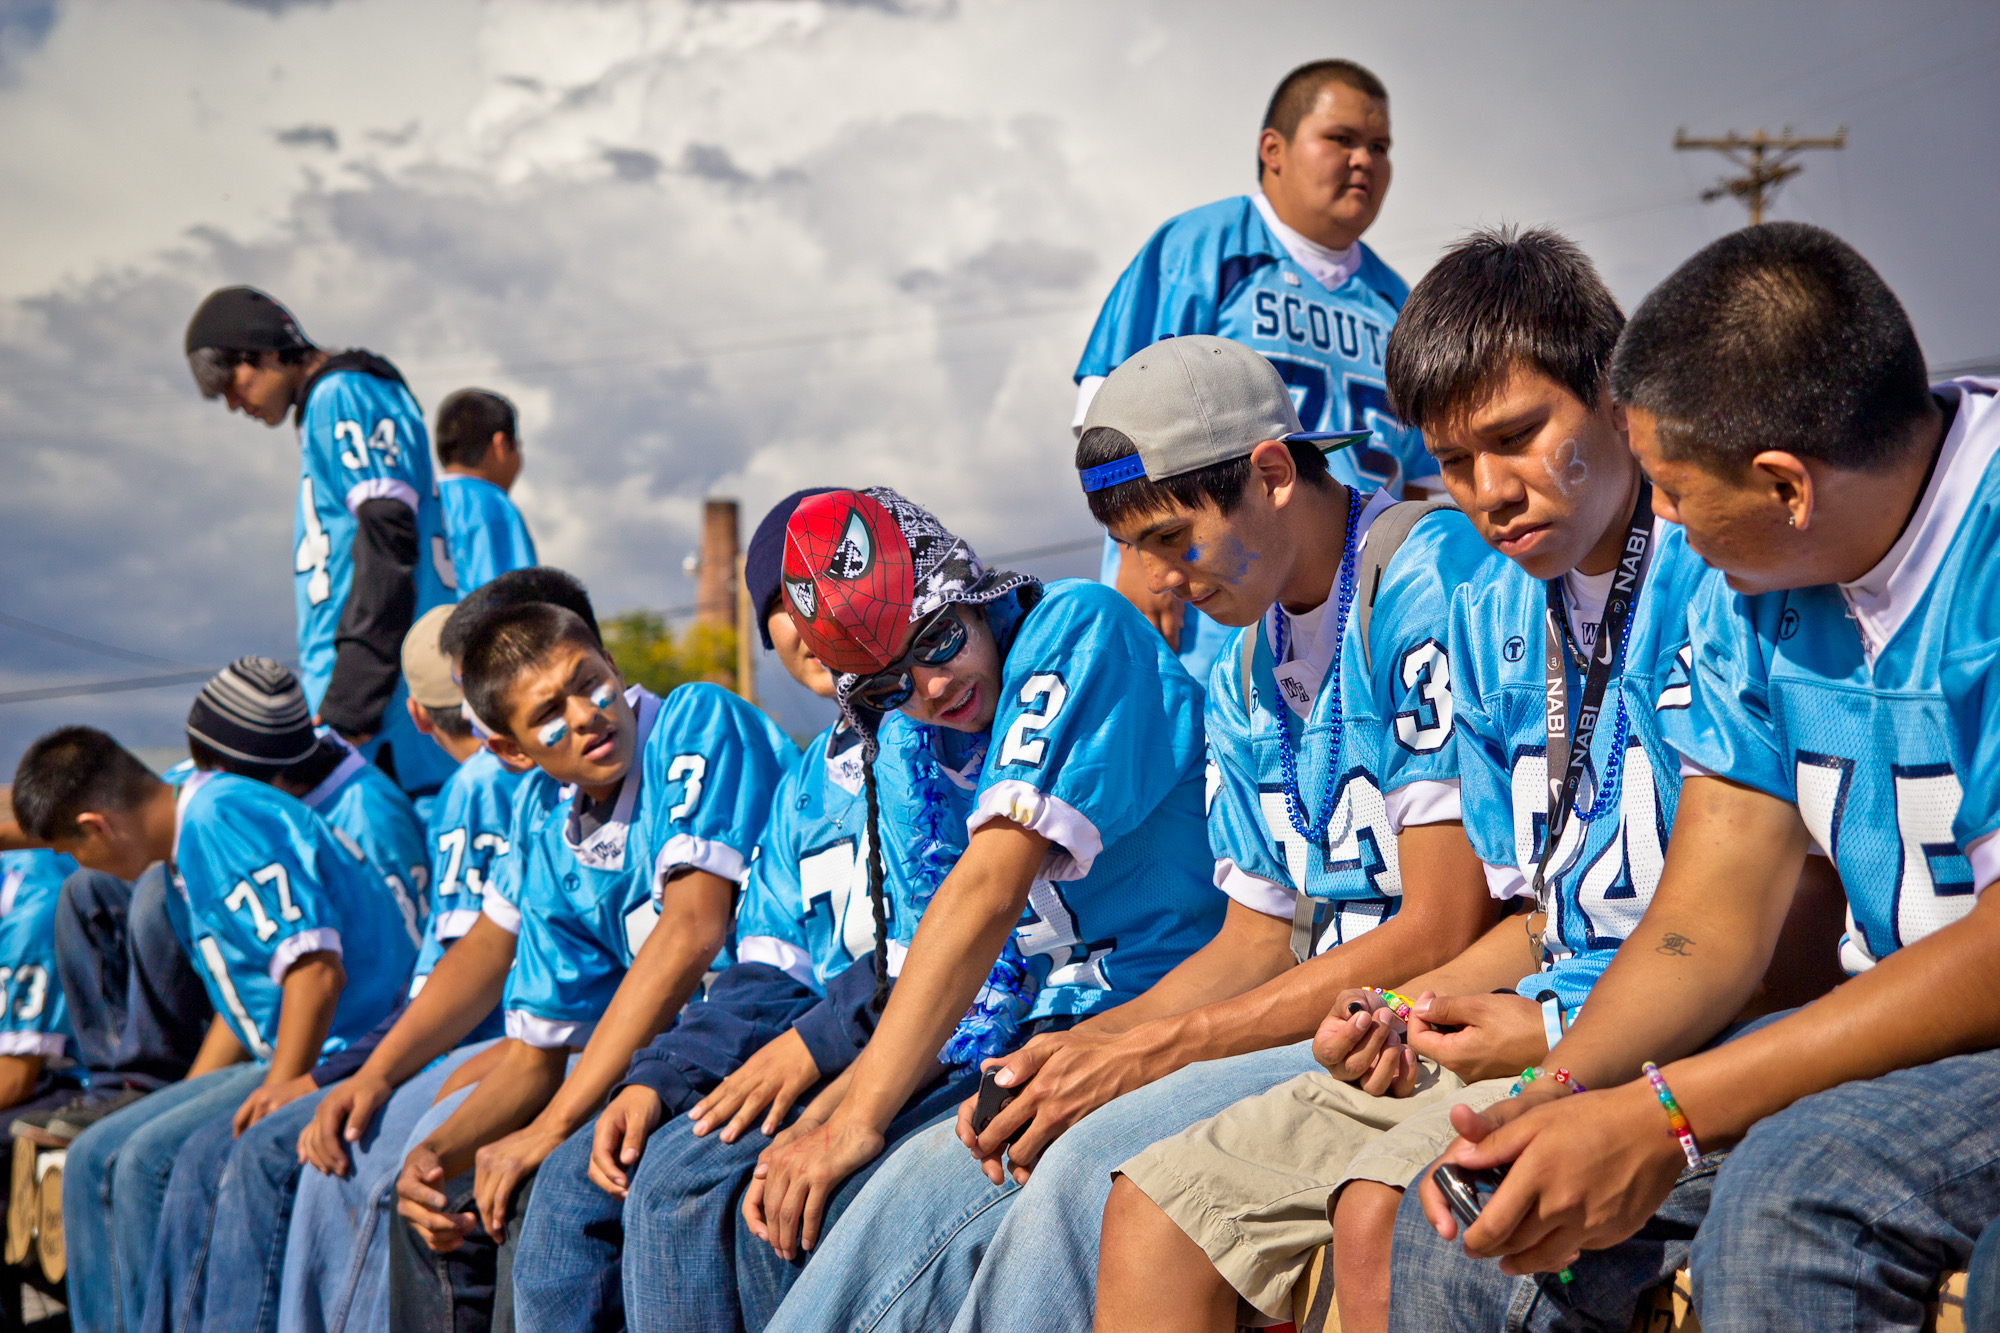 Appeals court ruling opens door for tribal jurisdiction over public schools